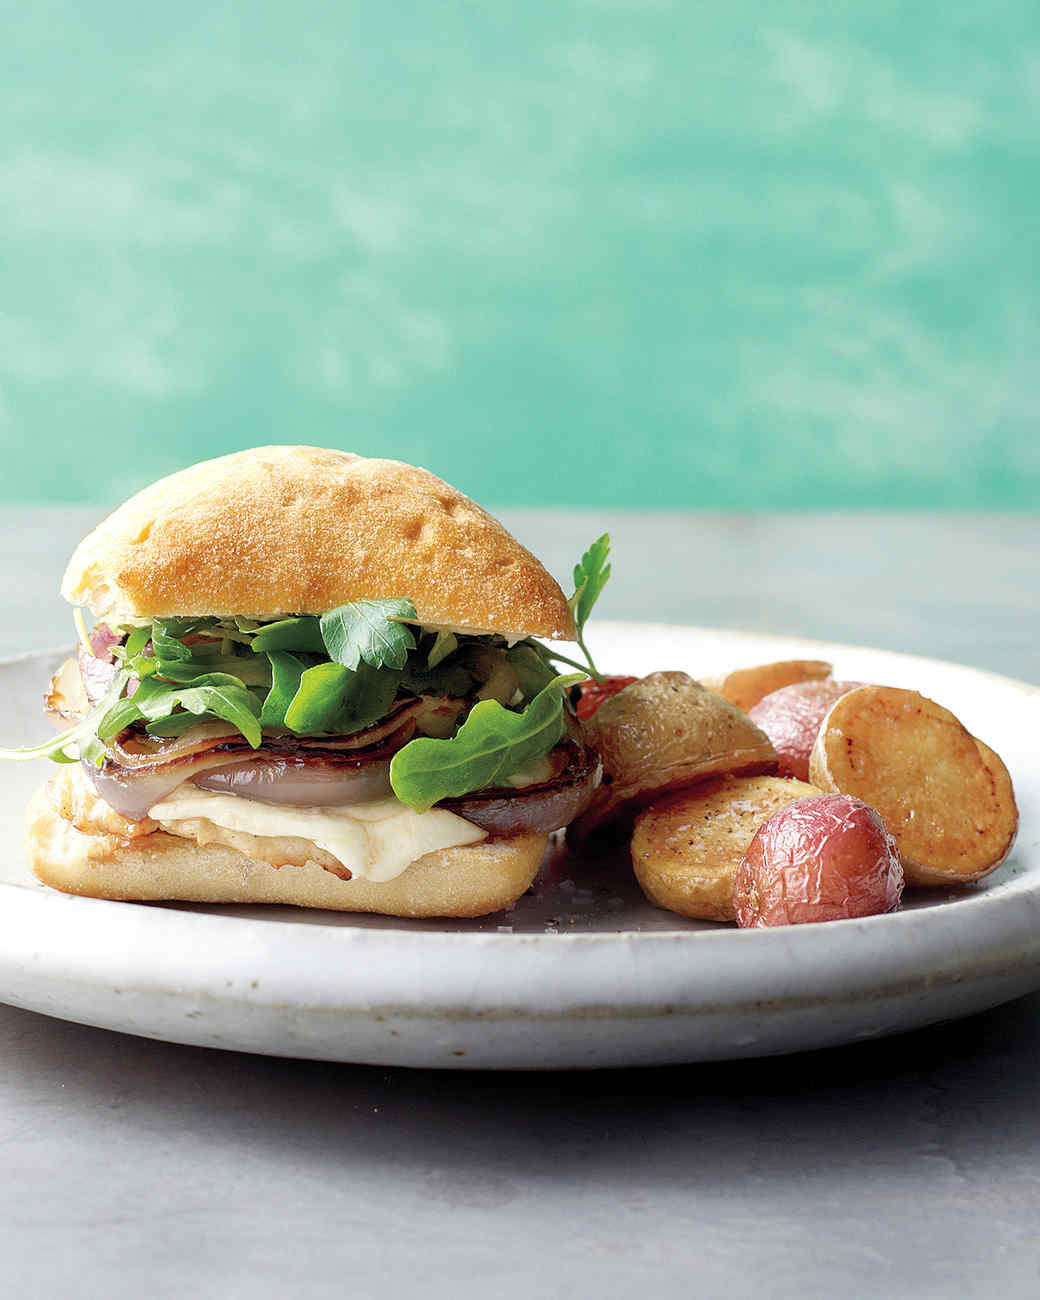 Chicken, Onion, and Mozzarella Sandwiches with Roasted Potatoes